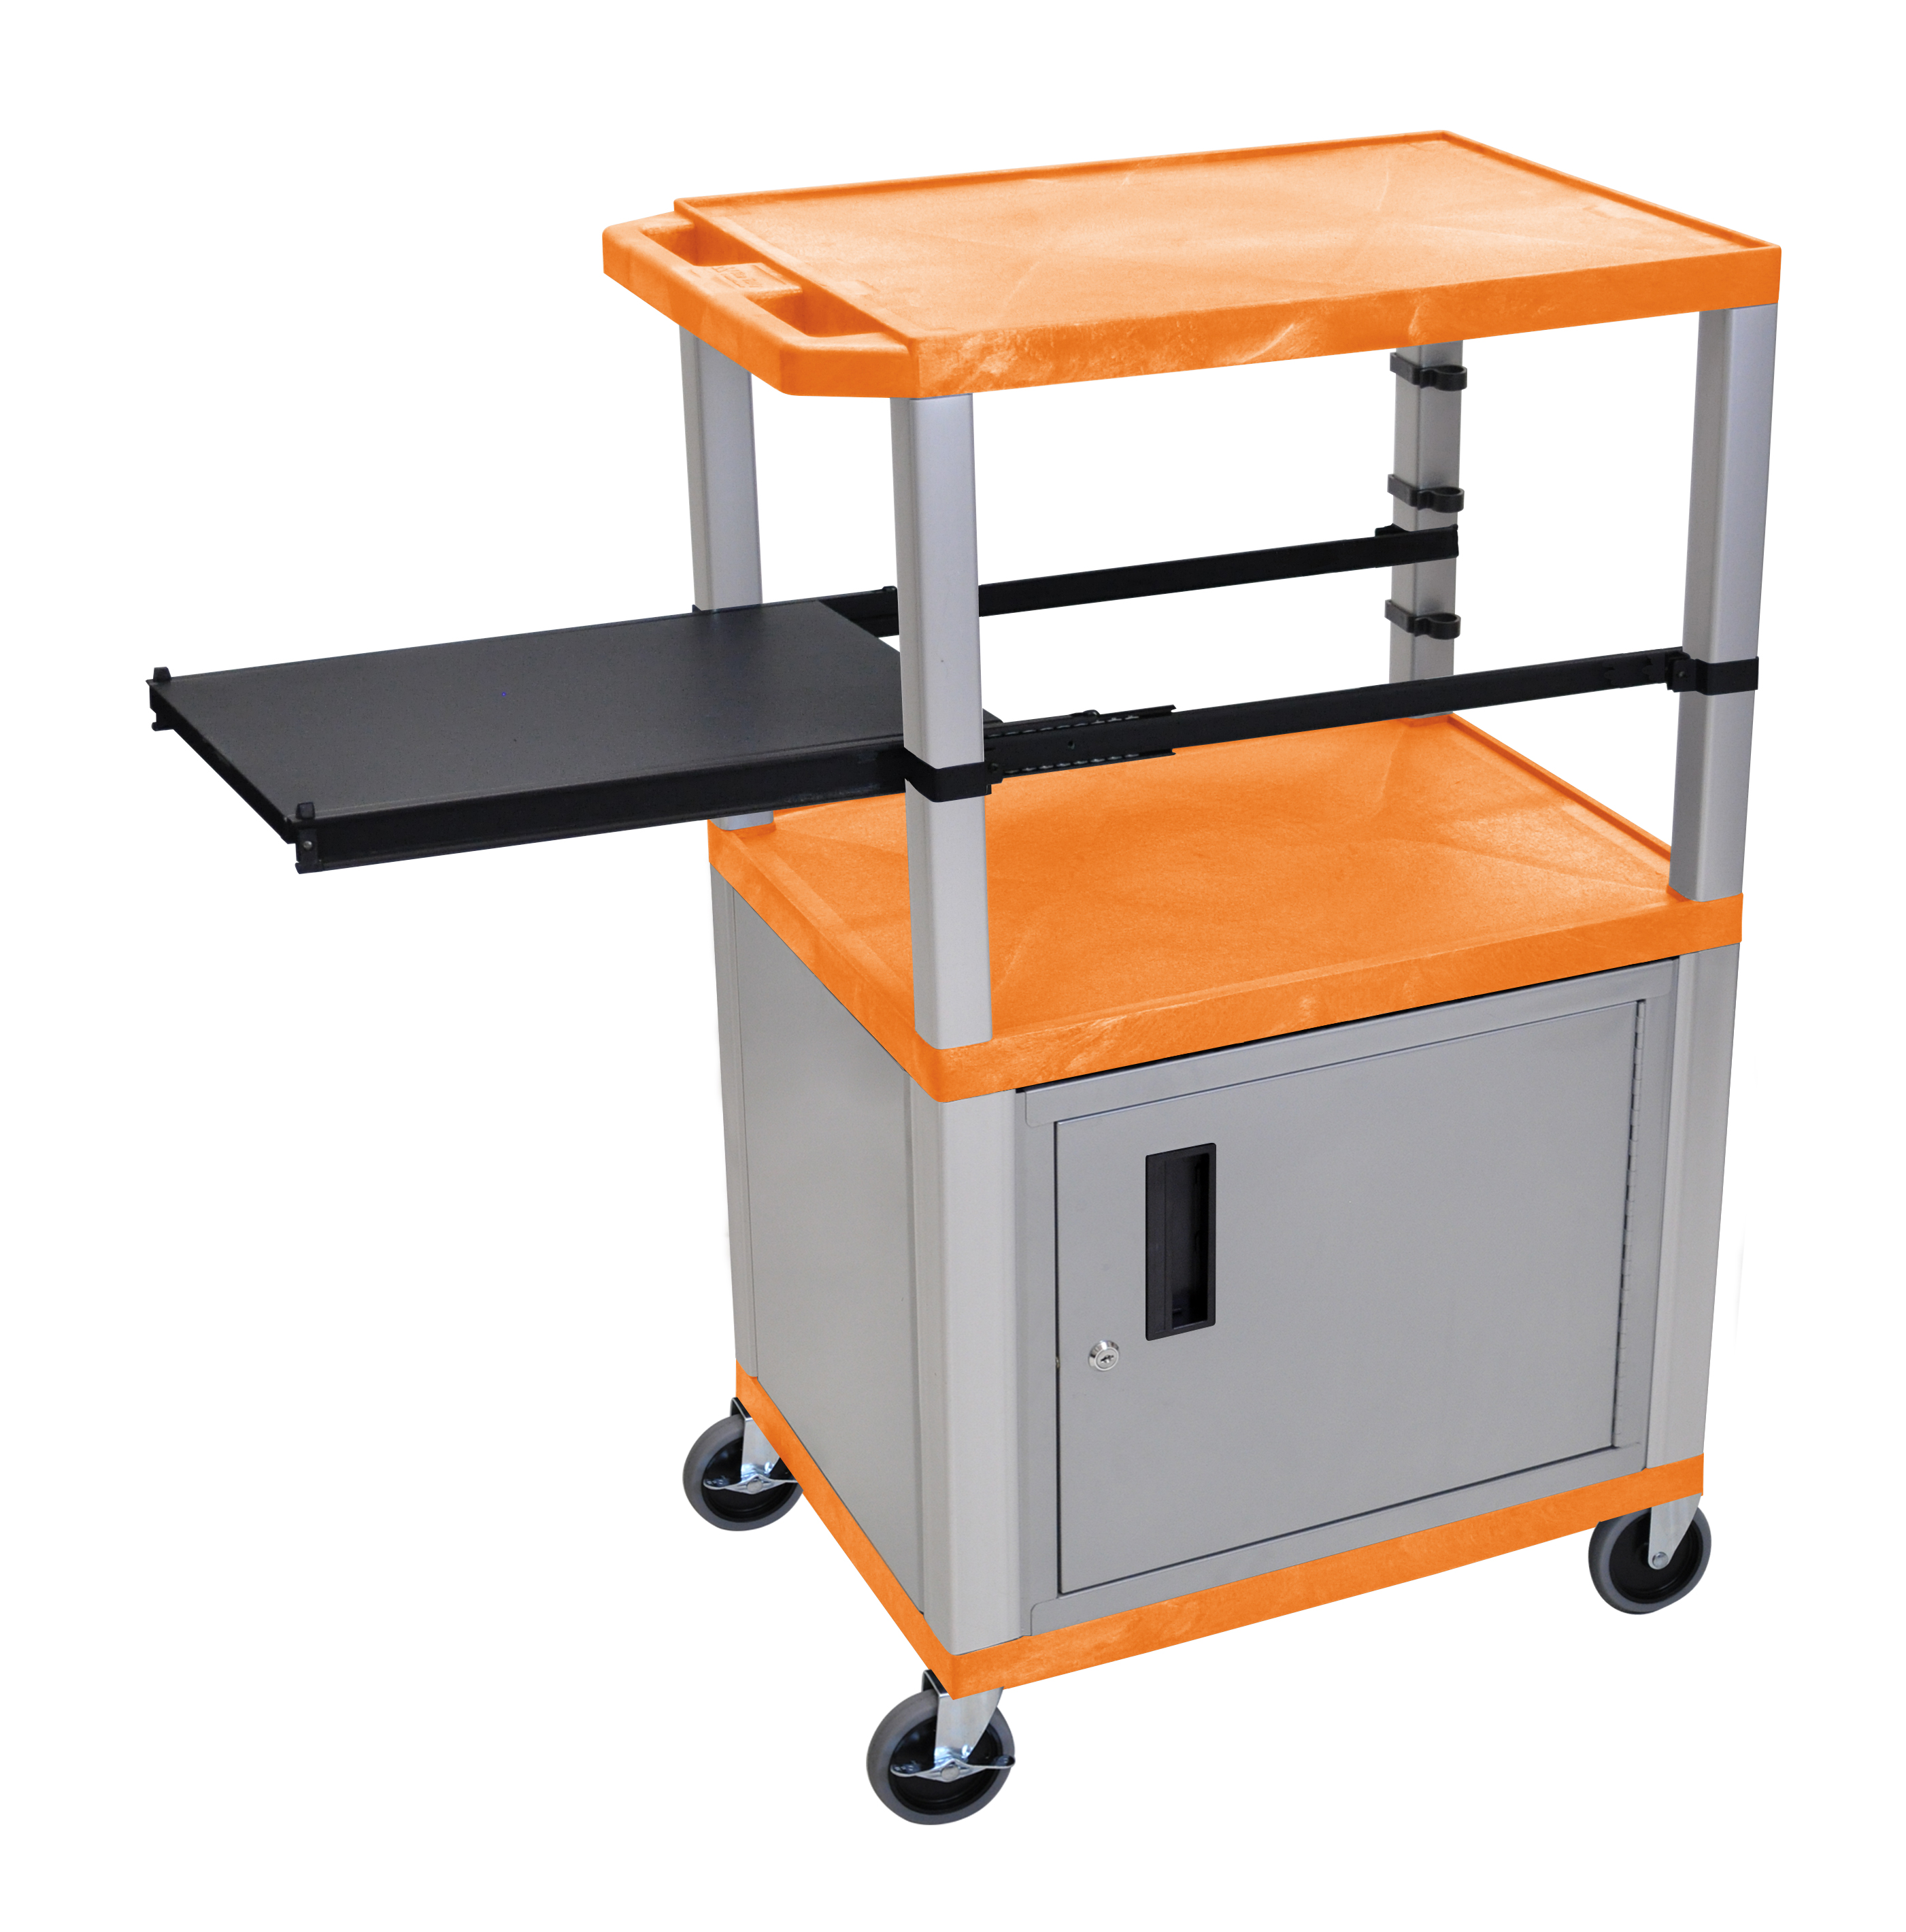 H WILSON WTPSP42ORC4E-N Presentation Station, 3-Shelf and Nickel Legs, Cabinet and Black Side Pull-Out Shelf, Tuffy, Orange